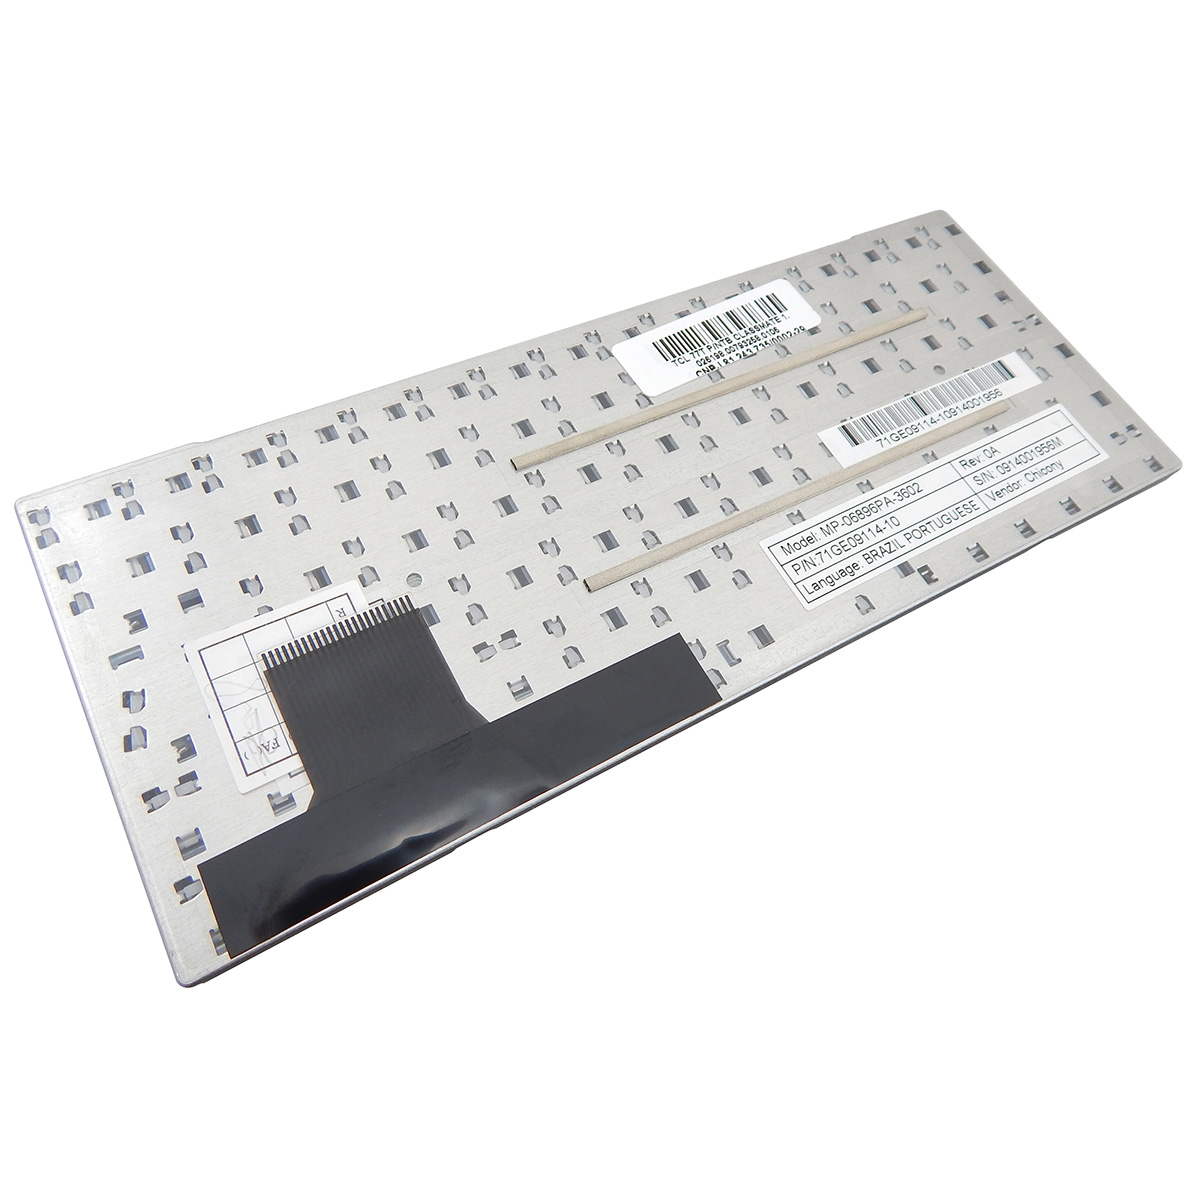 Teclado Netbook Pn: MP-06896PA-3602 / 71ge09114-10